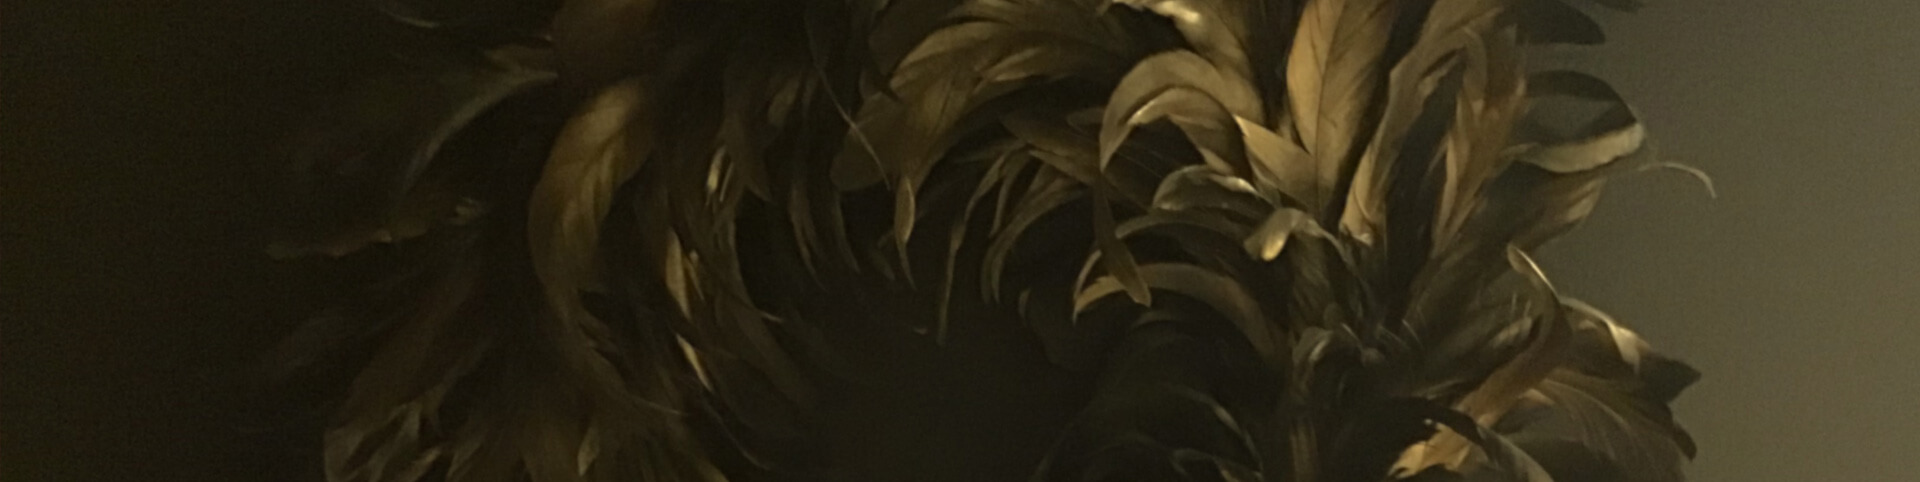 Cropped image of gold wreath